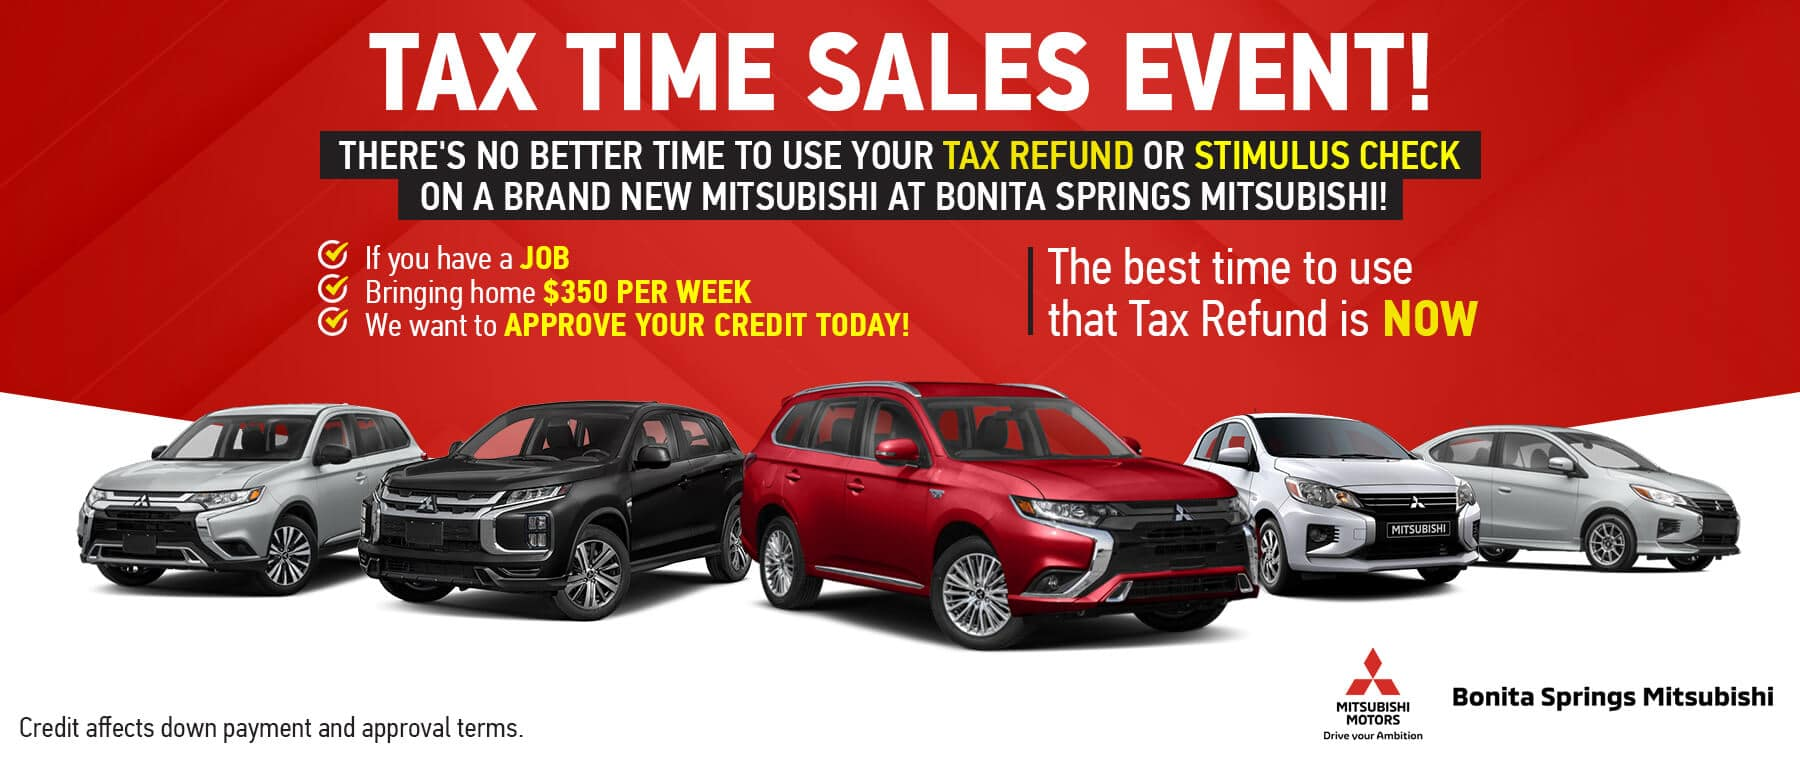 TAX-TIME-SALES-EVENT!